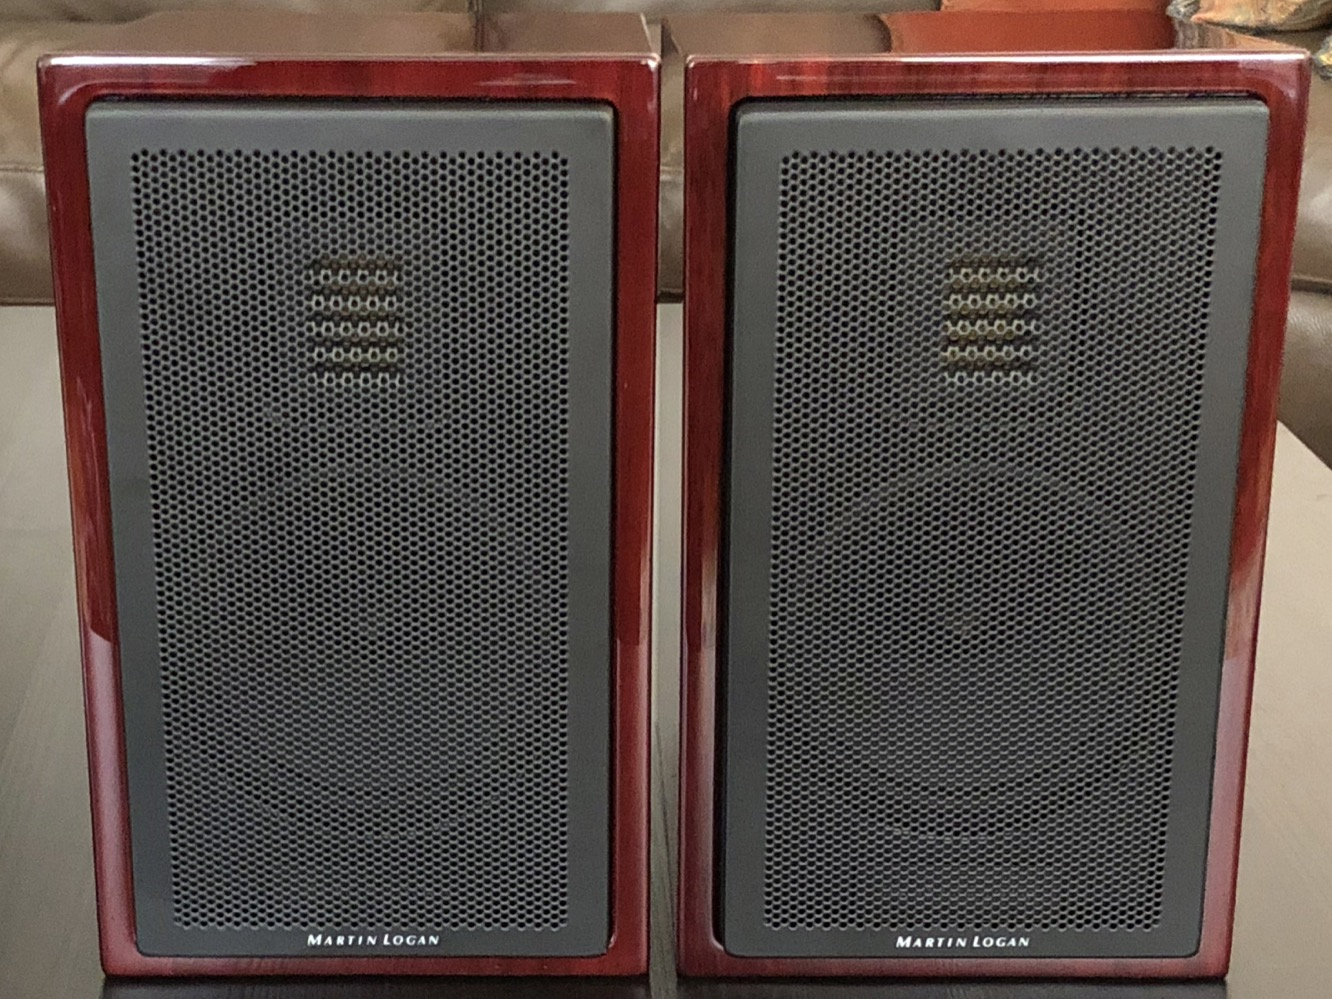 Review: MartinLogan Motion 15 Bookshelf Speakers